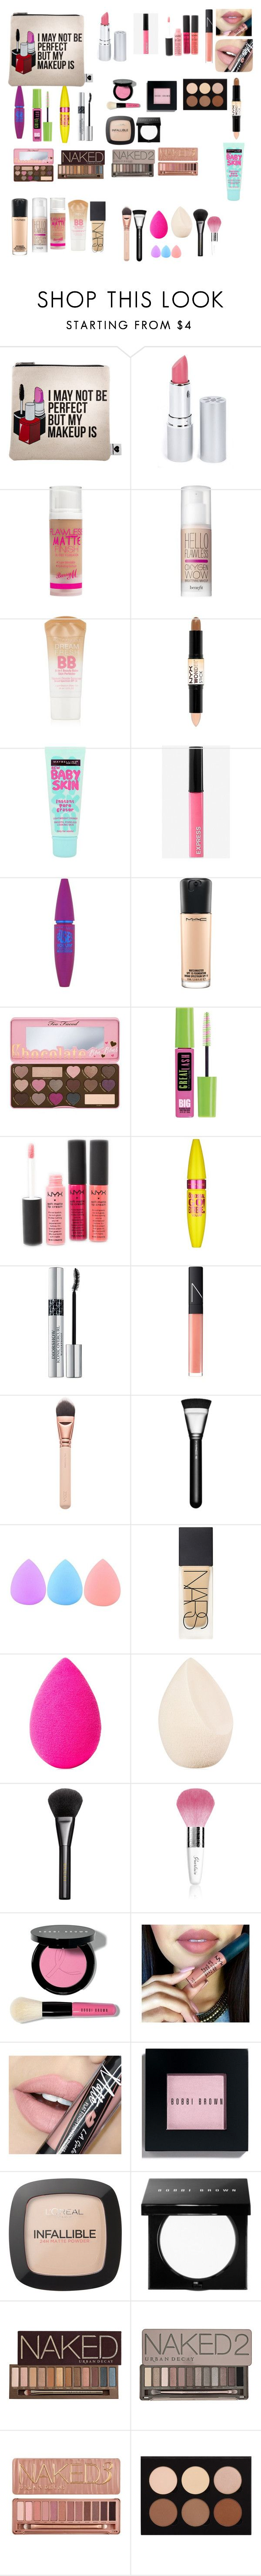 """""""Makeup bag must haves"""" by fashiongirl101hannah ❤ liked on Polyvore featuring Sephora Collection, HoneyBee Gardens, Barry M, Benefit, Maybelline, NYX, Express, MAC Cosmetics, Too Faced Cosmetics and Christian Dior"""